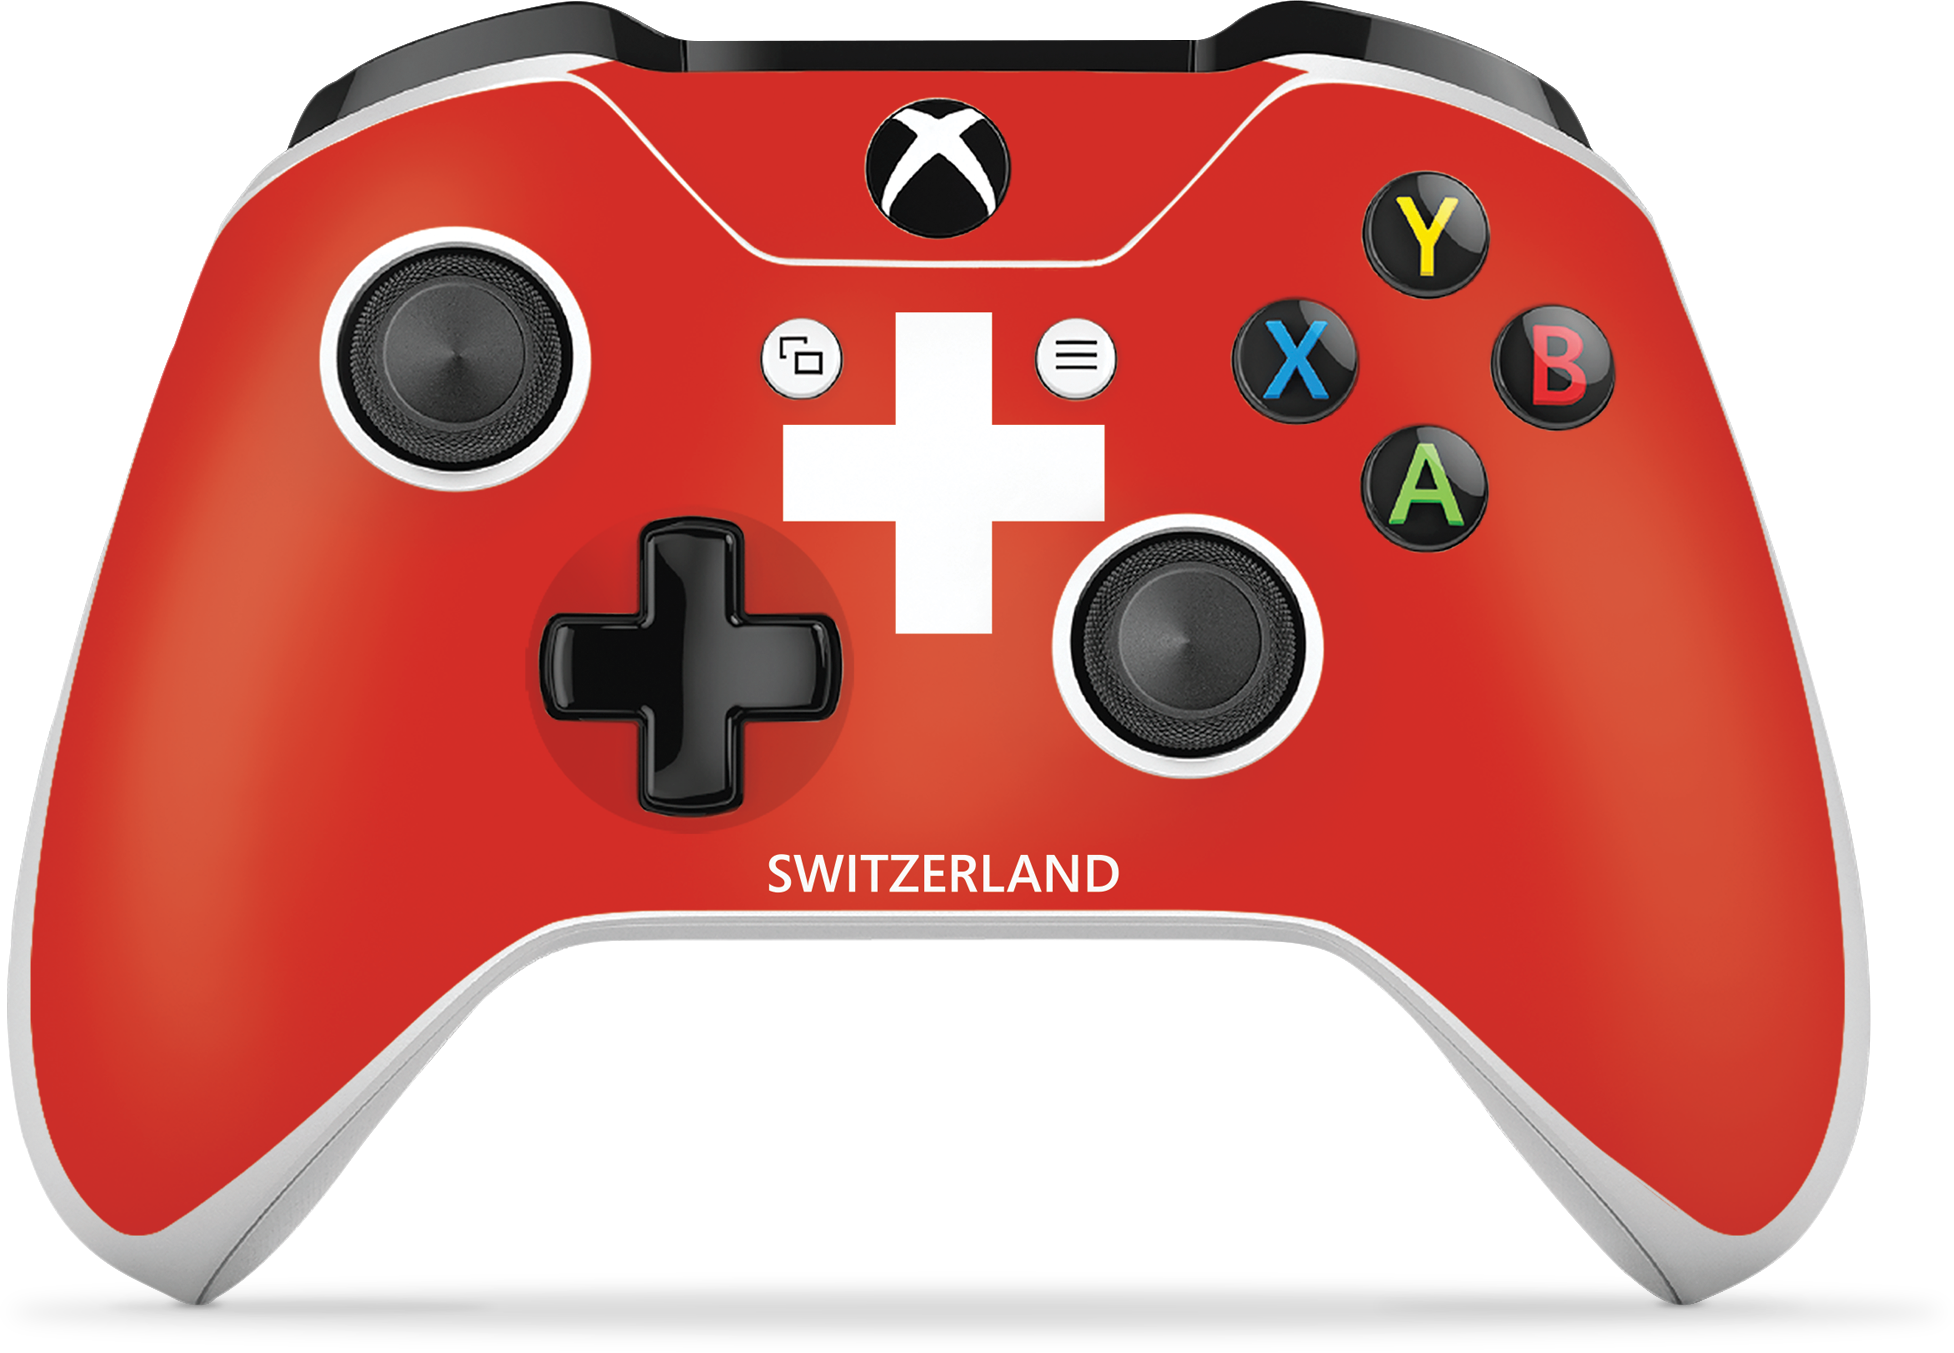 RE1ZiFx?ver=c3cd - Controller Gear World's Game Controller Skins (Switzerland)